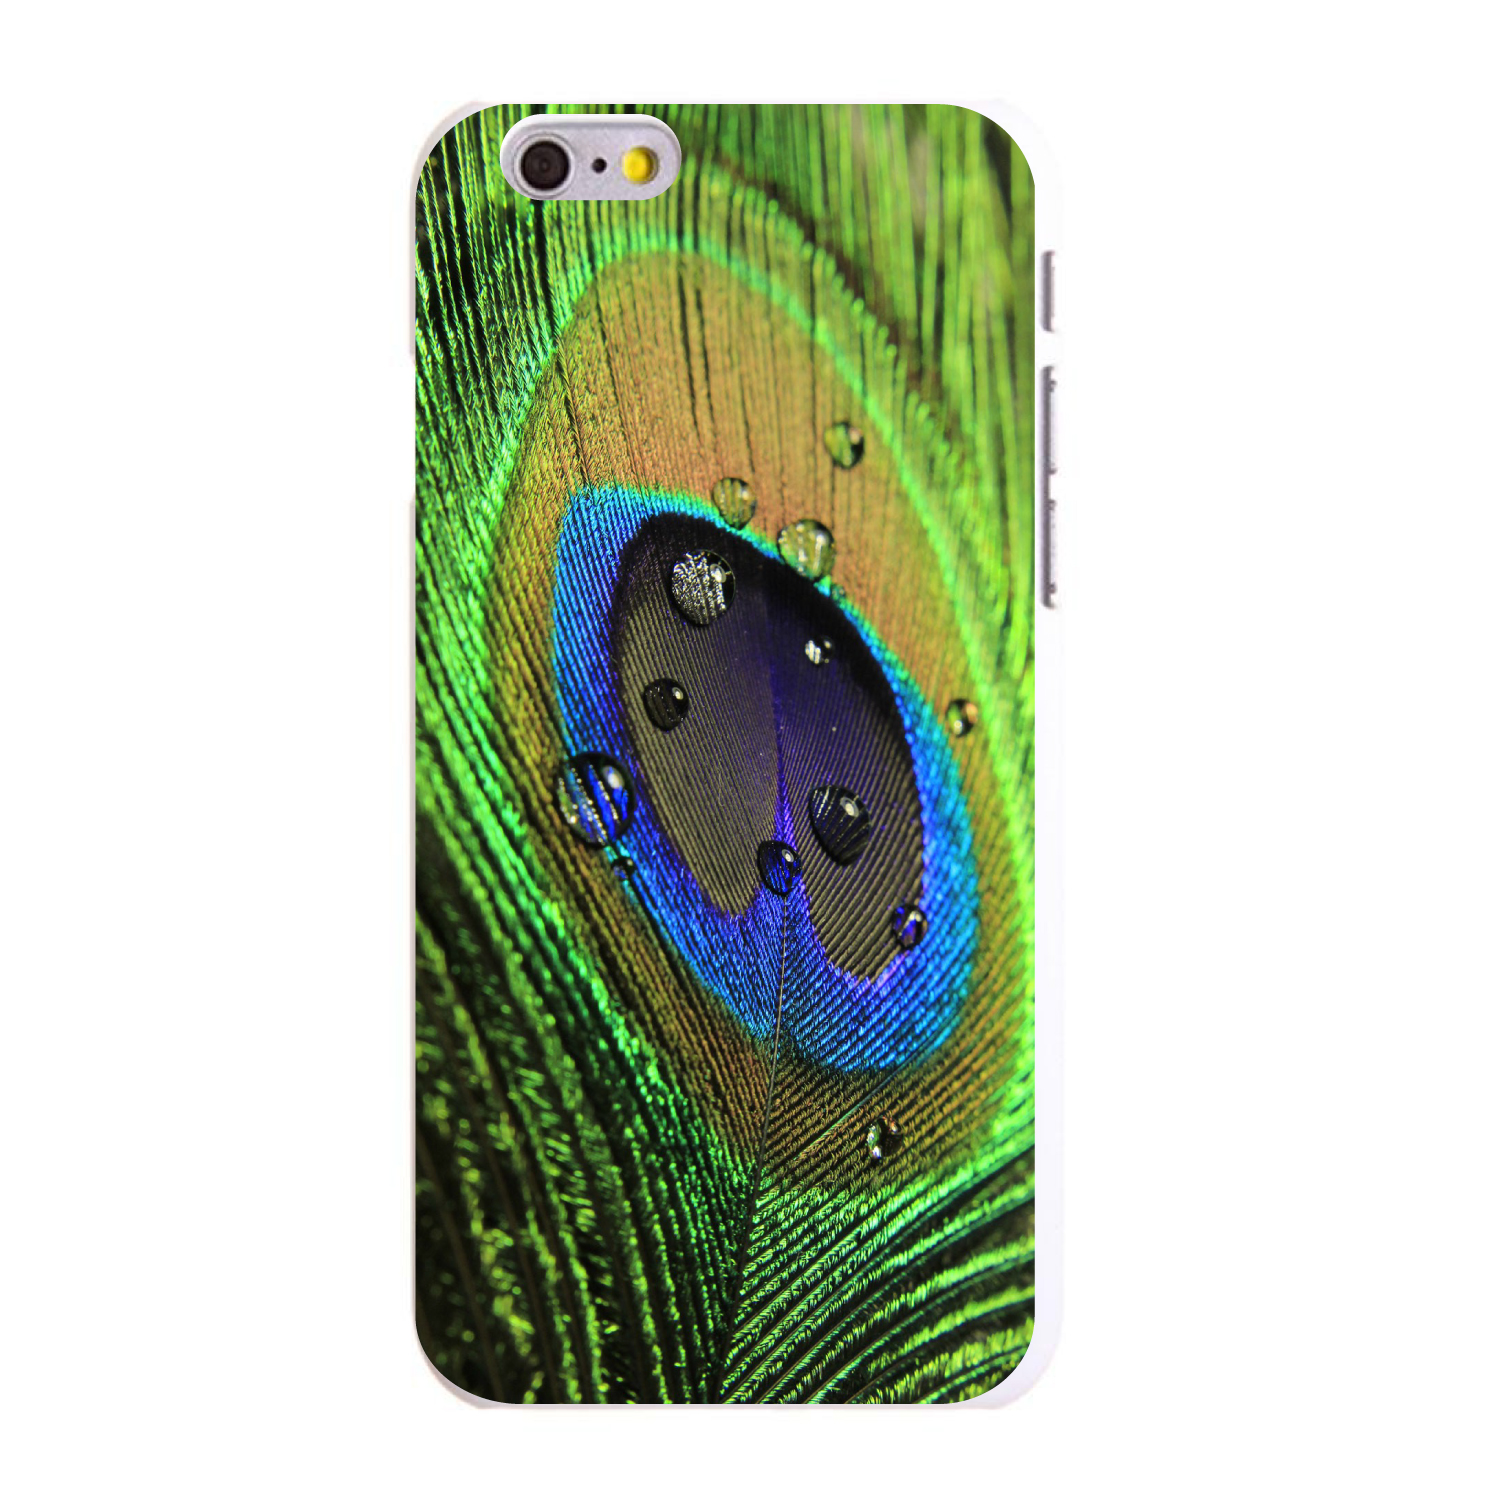 """CUSTOM White Hard Plastic Snap-On Case for Apple iPhone 6 PLUS / 6S PLUS (5.5"""" Screen) - Peacock Feather Close Up"""